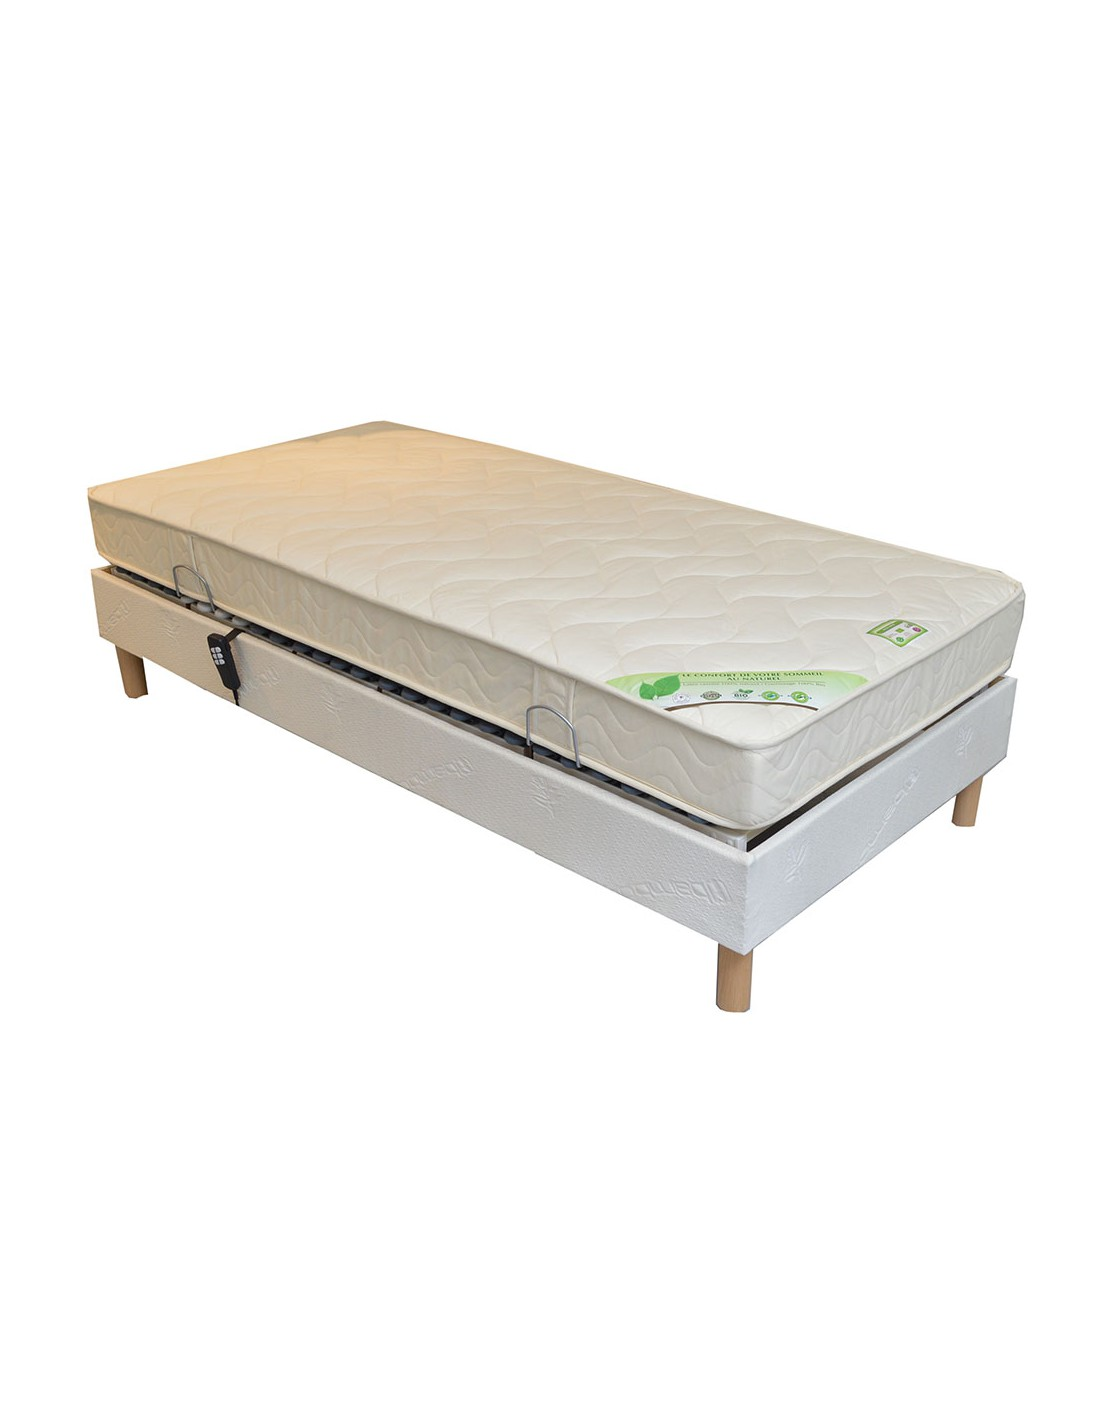 matelas 80 x 200 mattress 180 x 200 orthopedic from usa. Black Bedroom Furniture Sets. Home Design Ideas